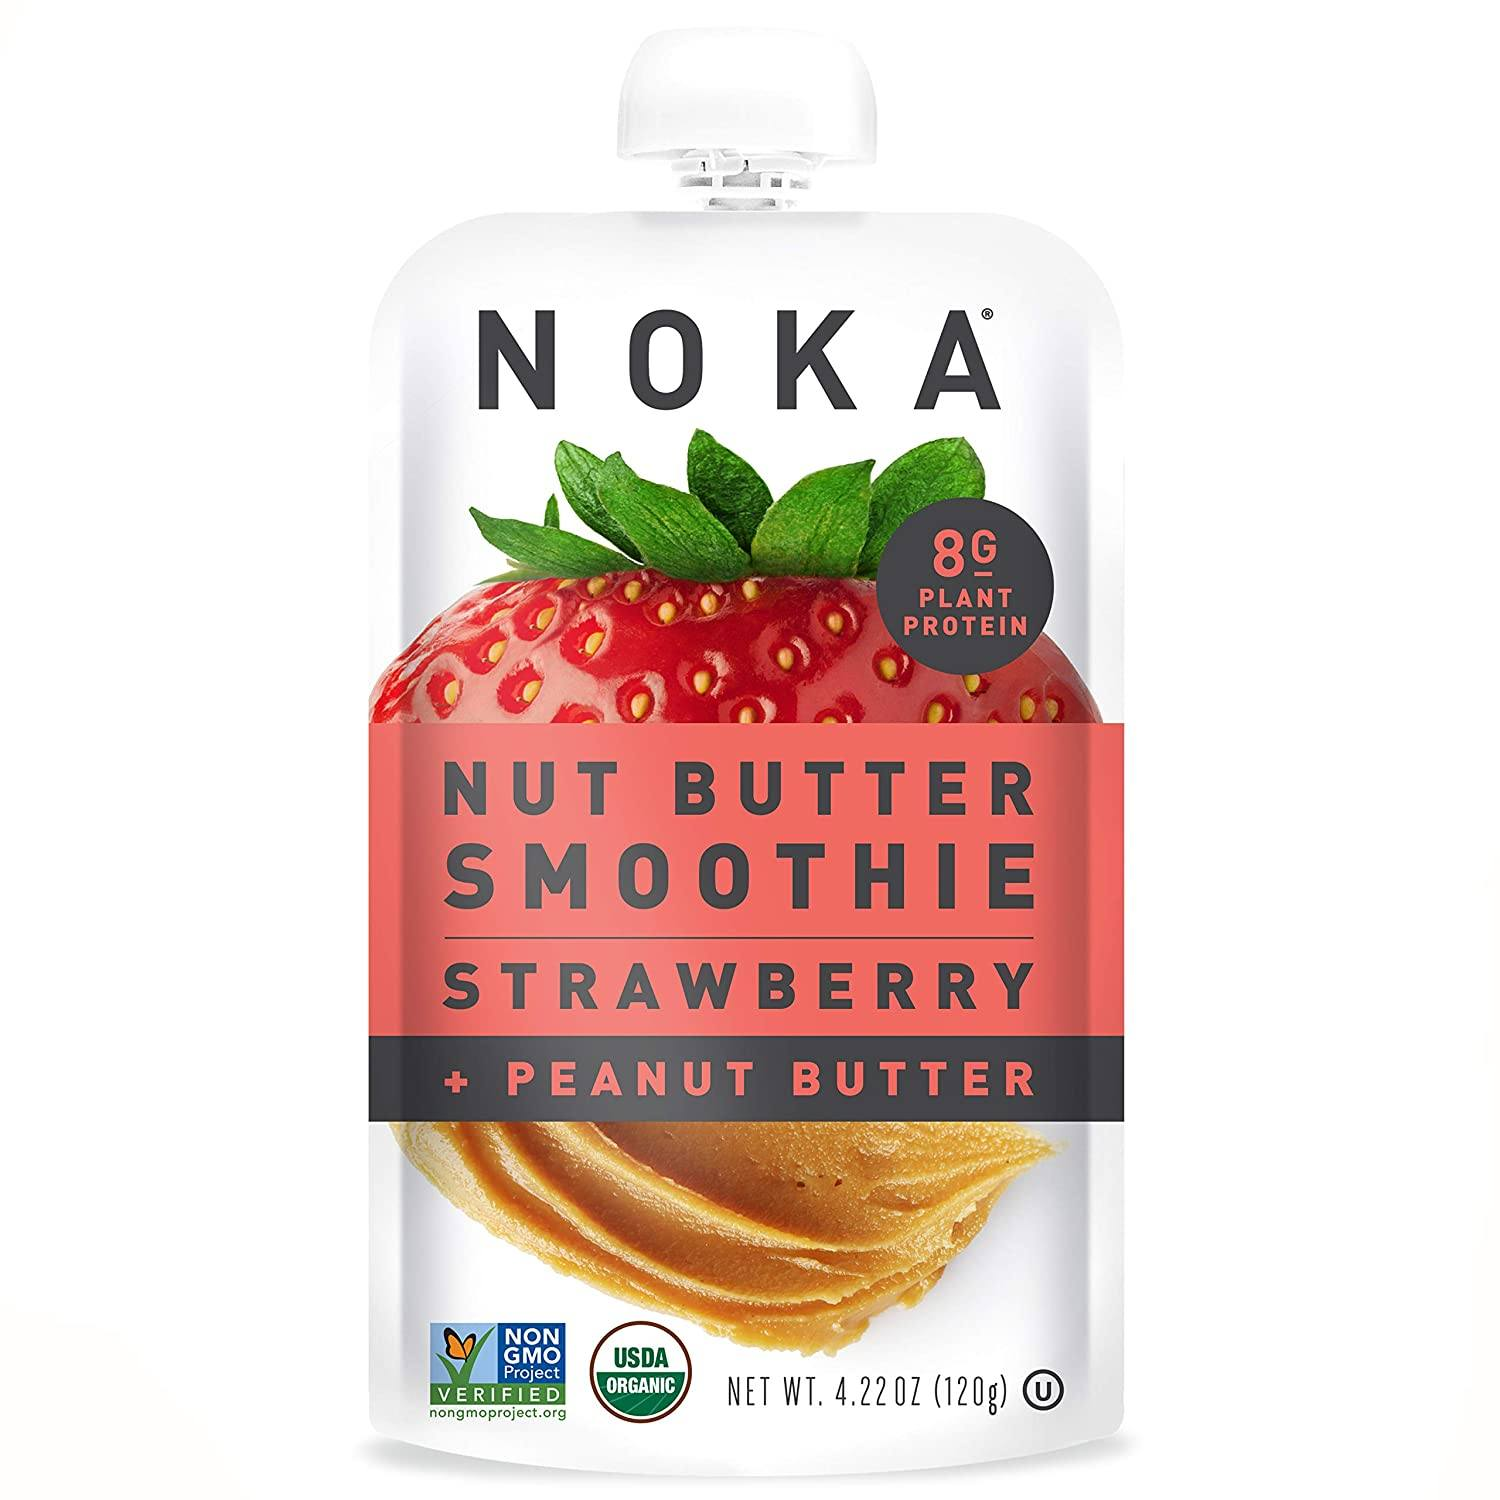 NOKA Nut Butter Smoothies NOKA Strawberry + Peanut Butter 4.22 Ounce